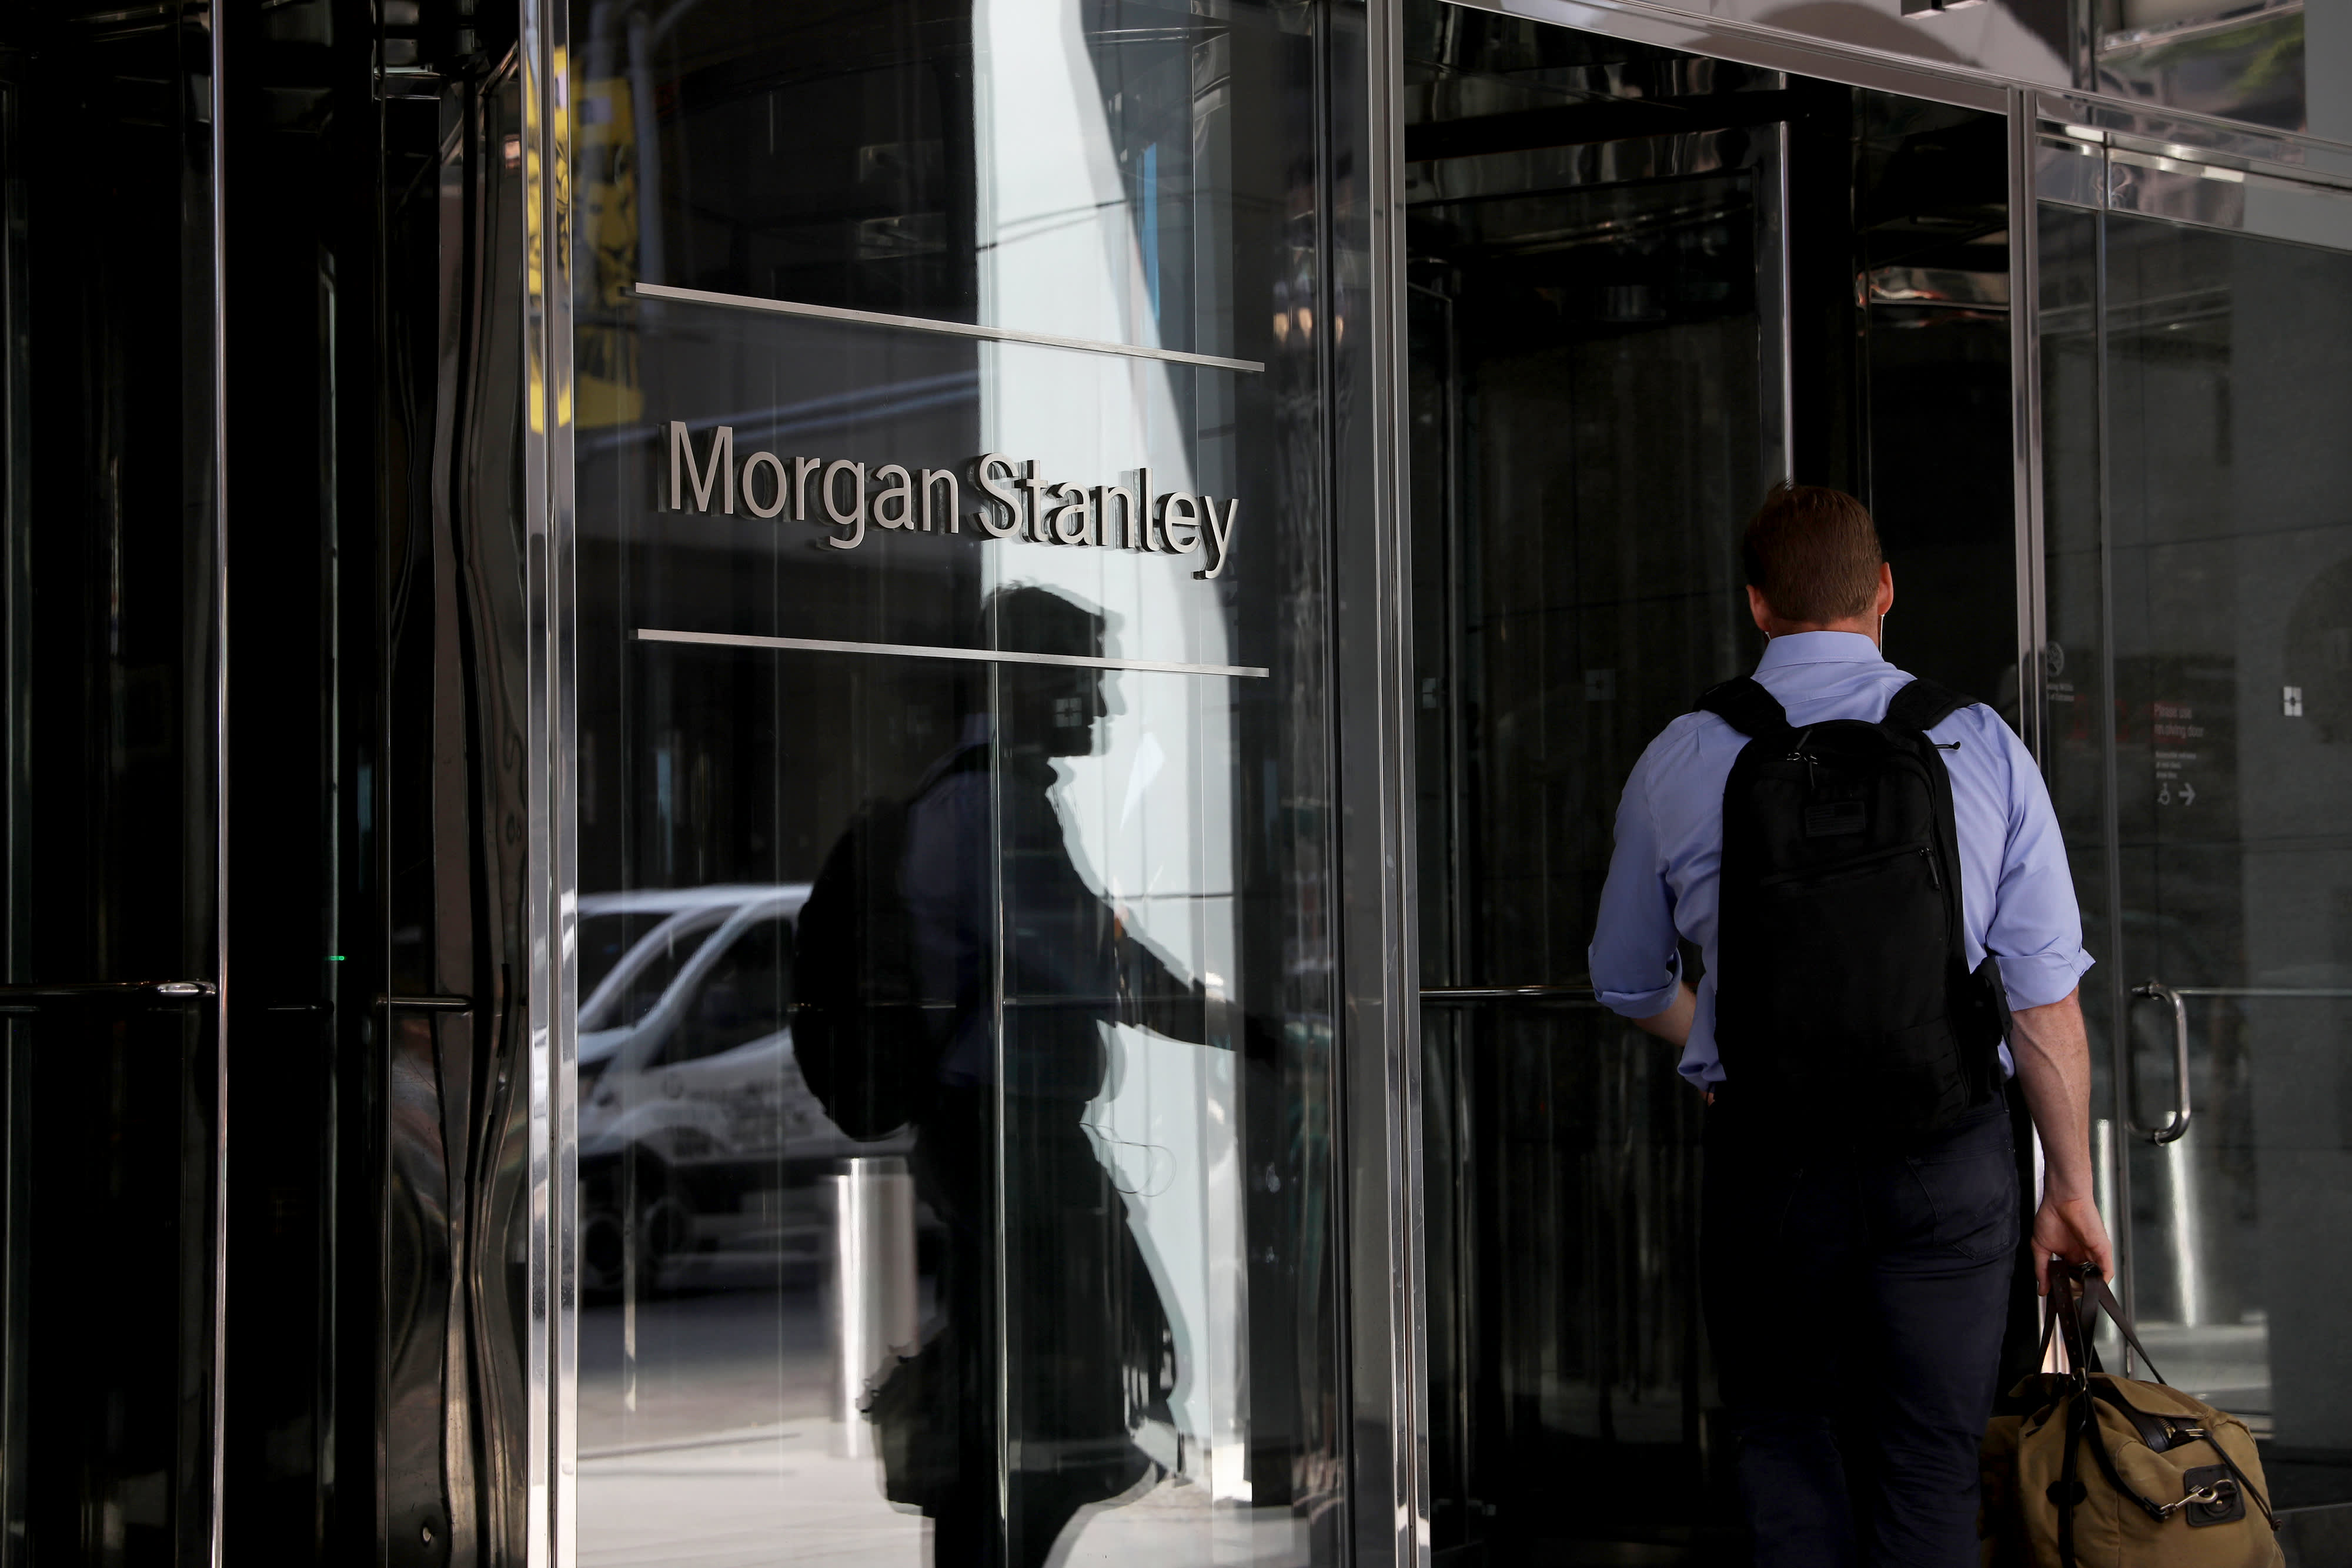 Citigroup downgrades Morgan Stanley: 'We do not see enough upside to justify a buy rating'